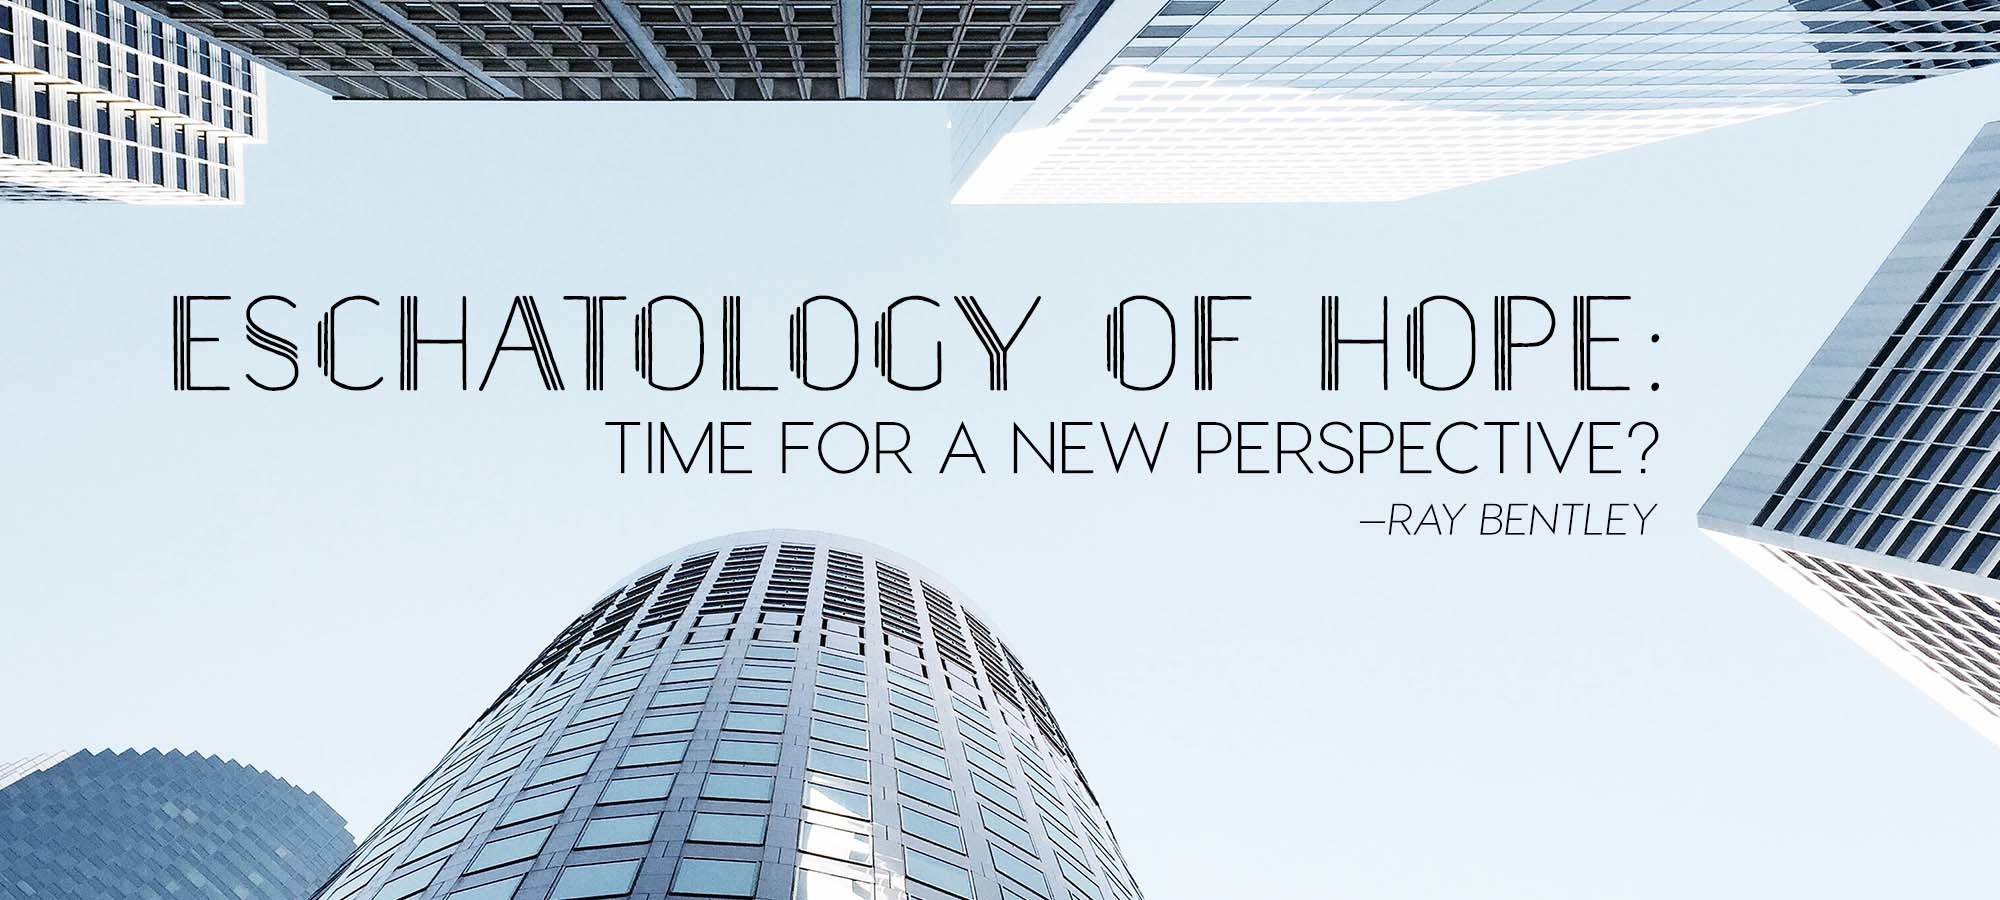 Eschatology of Hope: Time for a New Perspective?